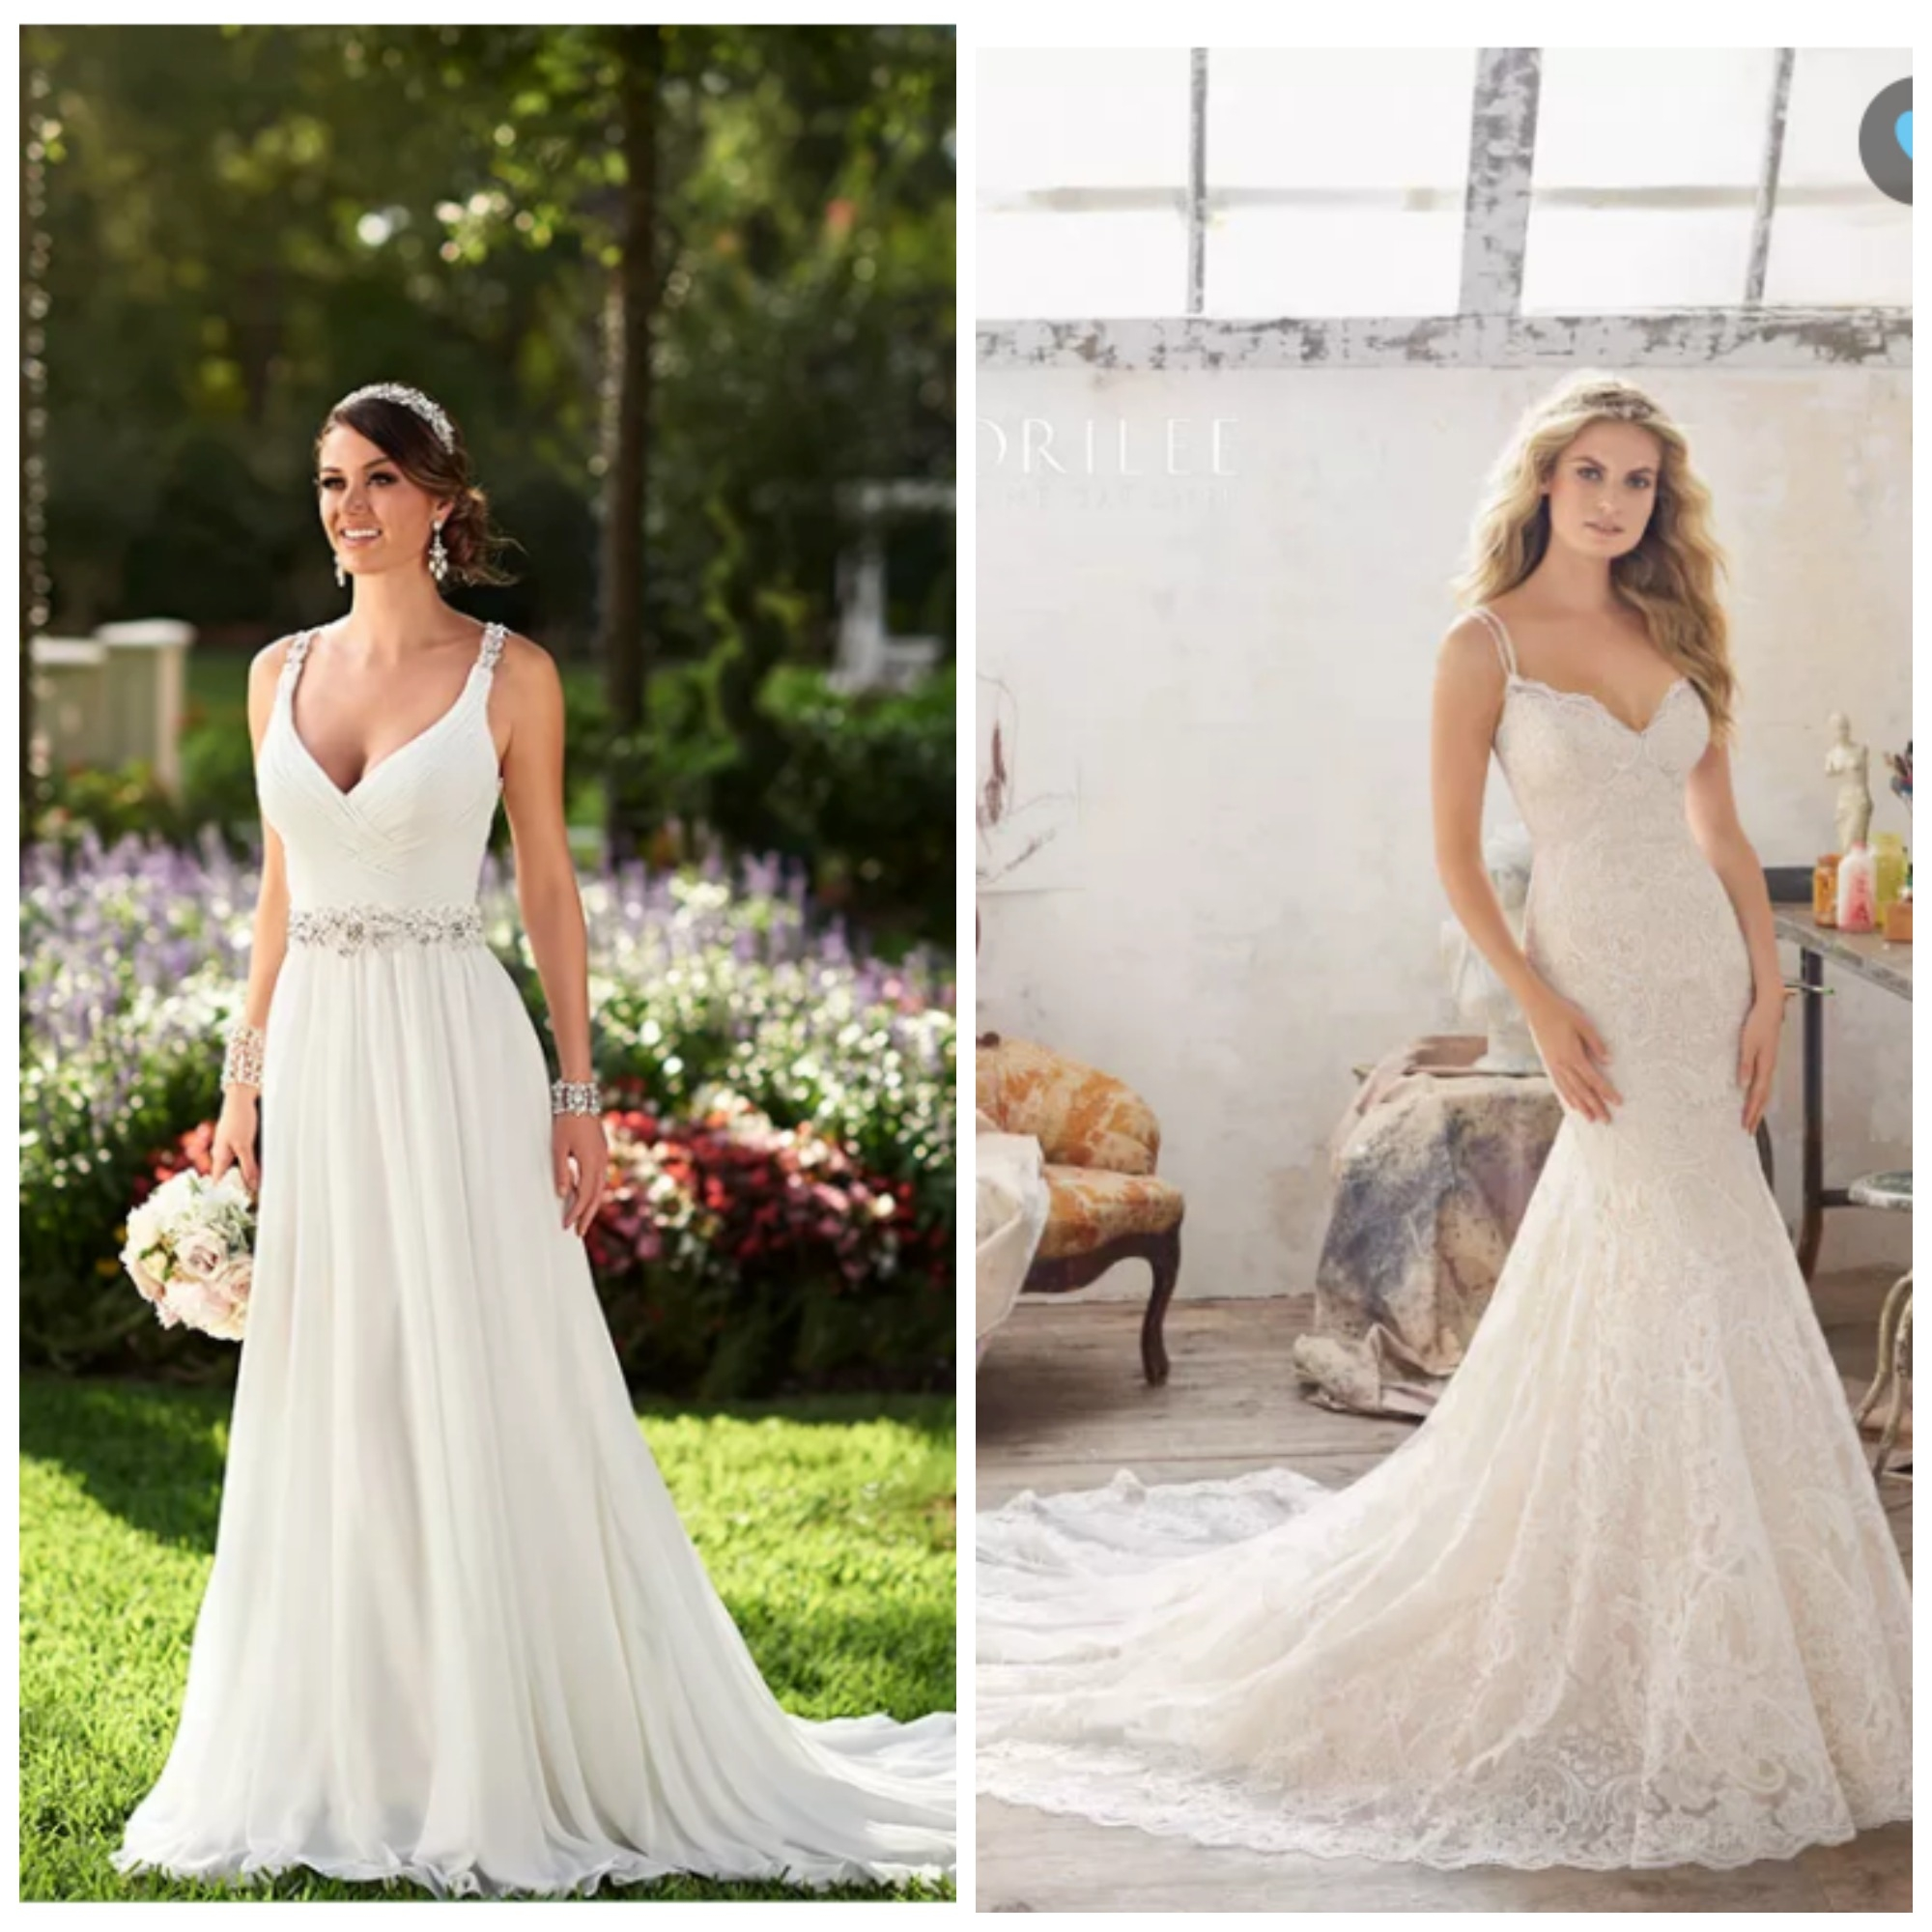 Bridal dresses I love